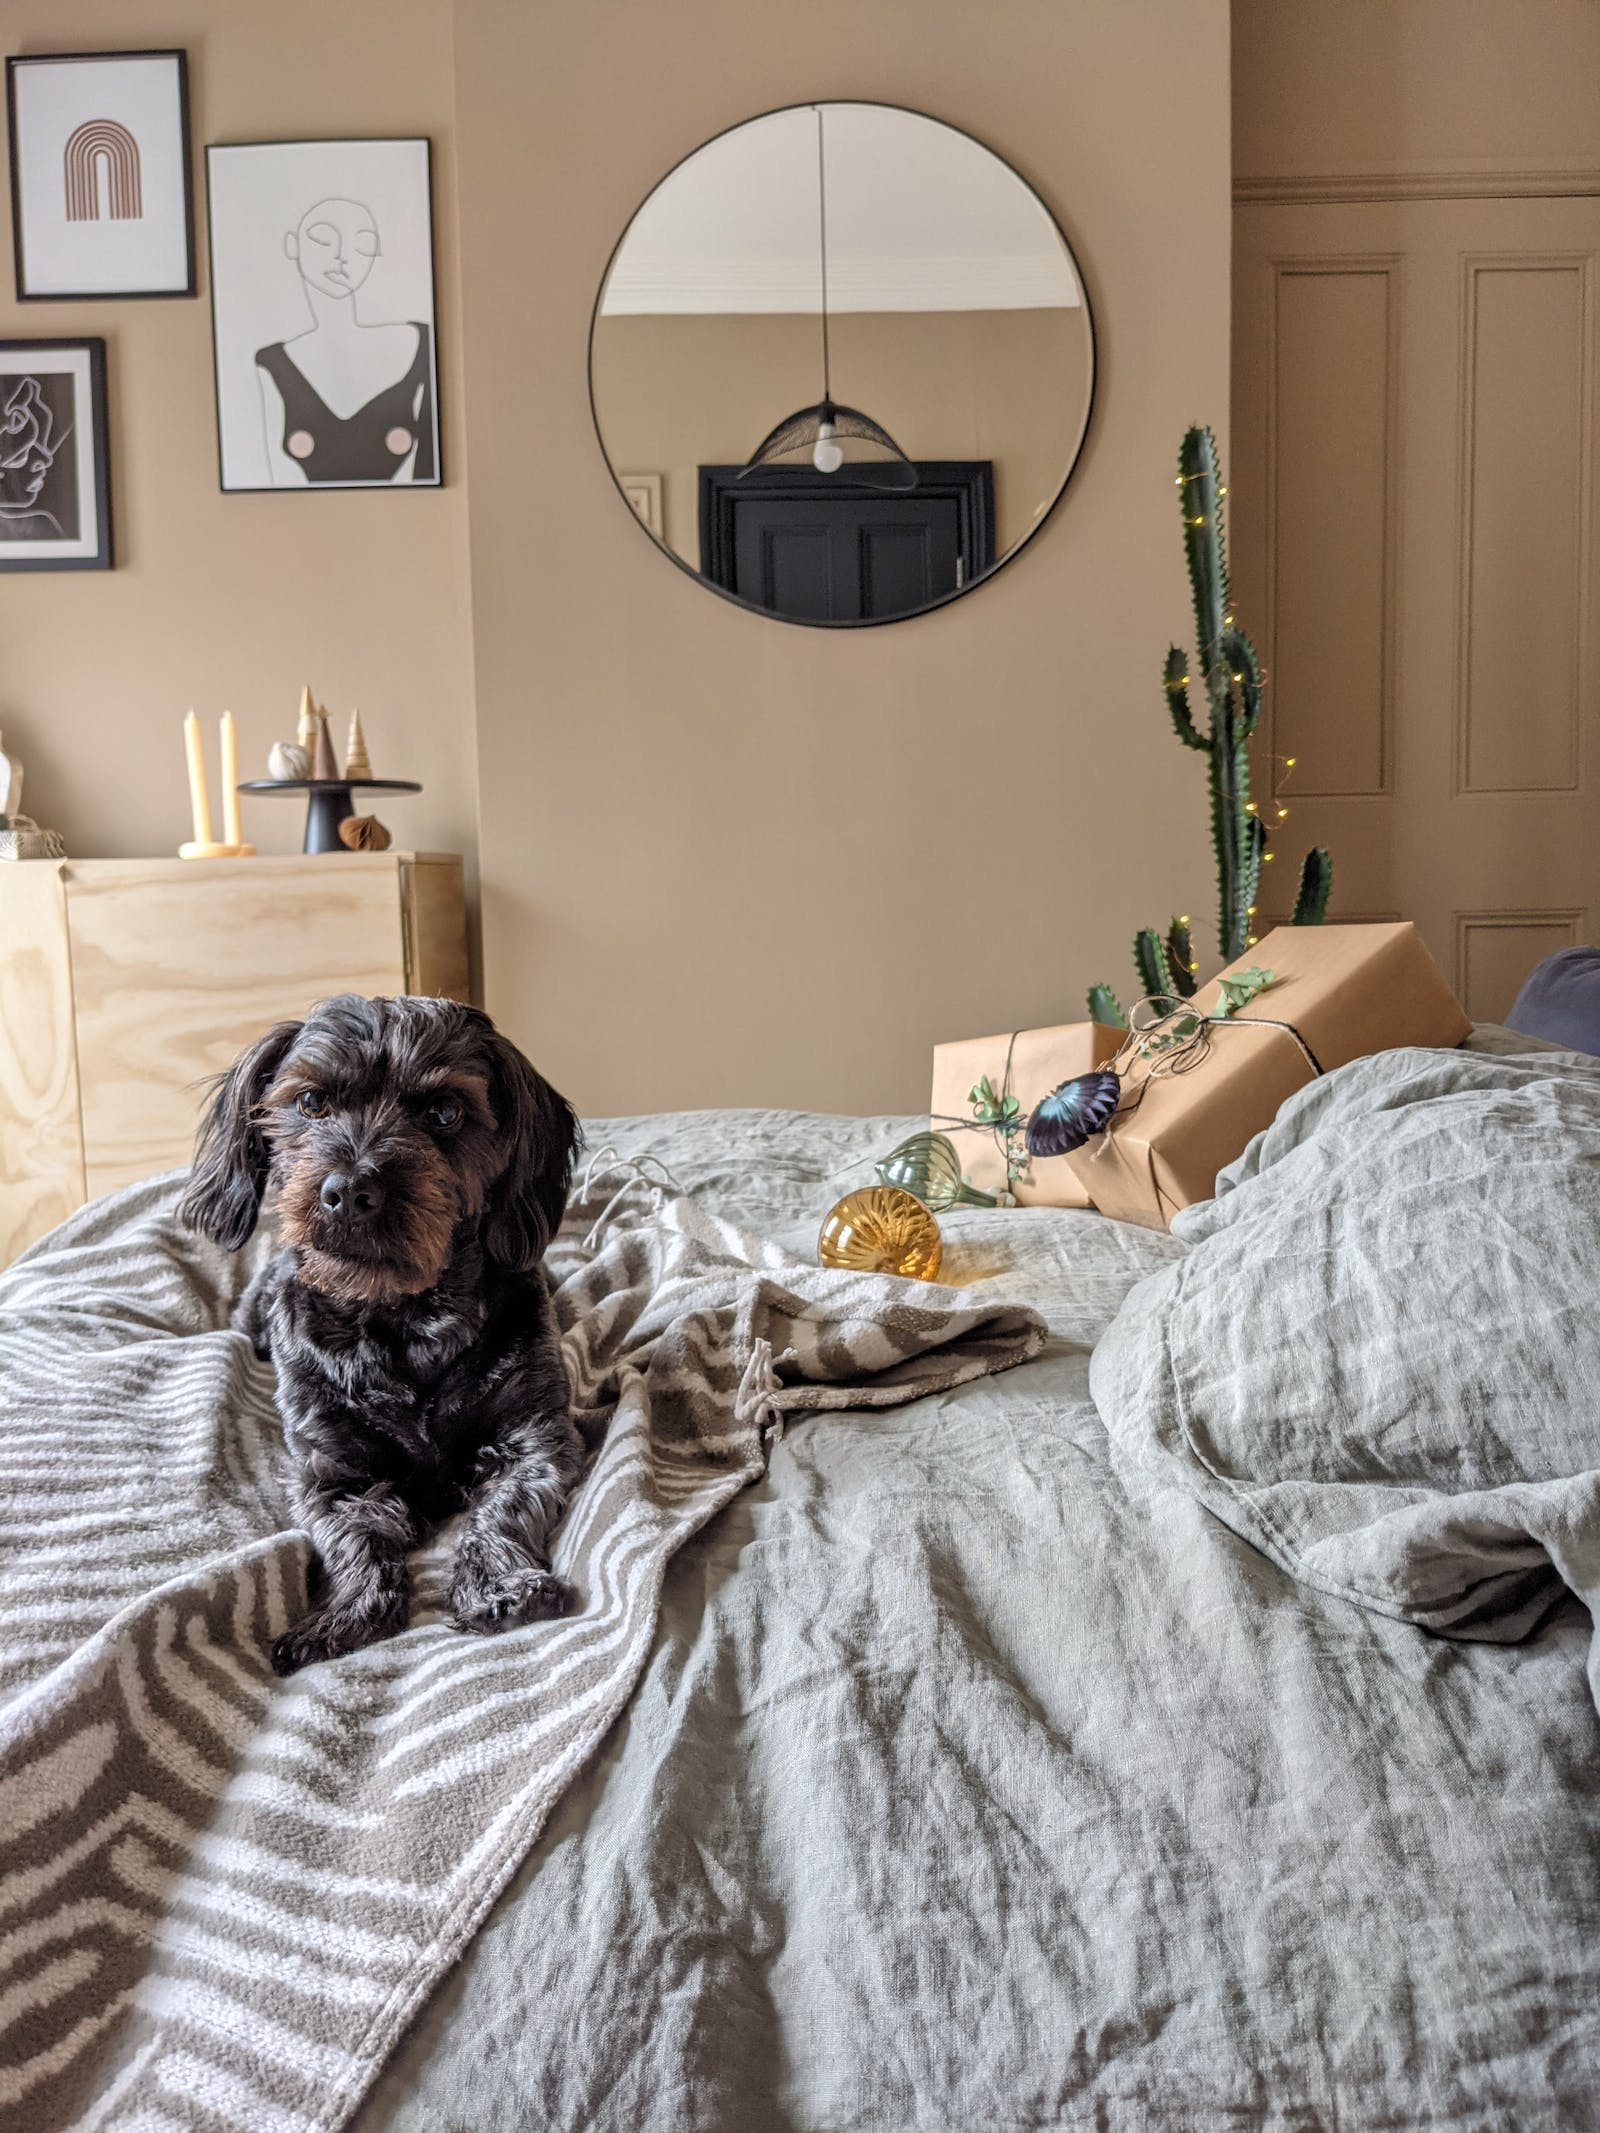 Dog sitting on top of a bed, bedroom walls painted in Lick Beige 02